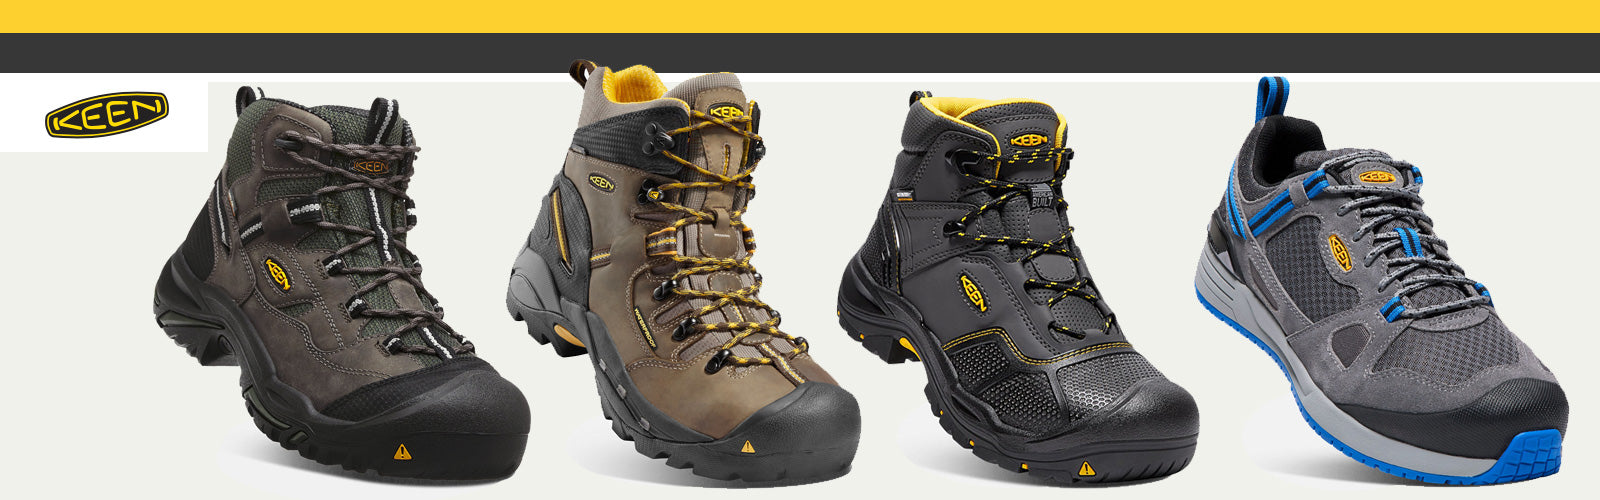 Keen Boots only at Coastal Boot